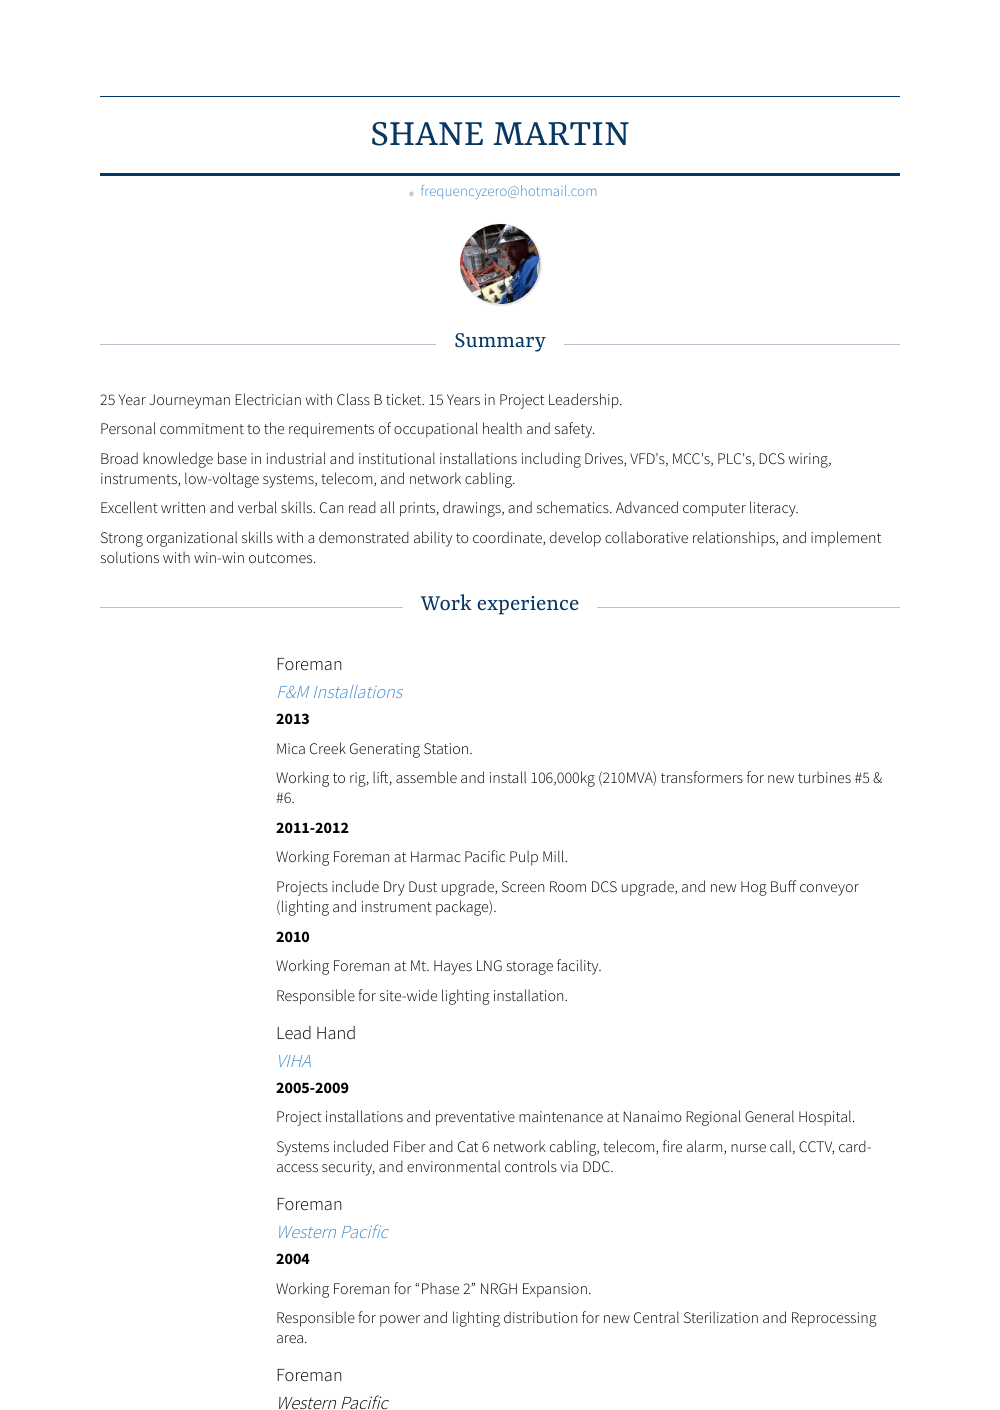 Foreman Resume Samples Templates Visualcv